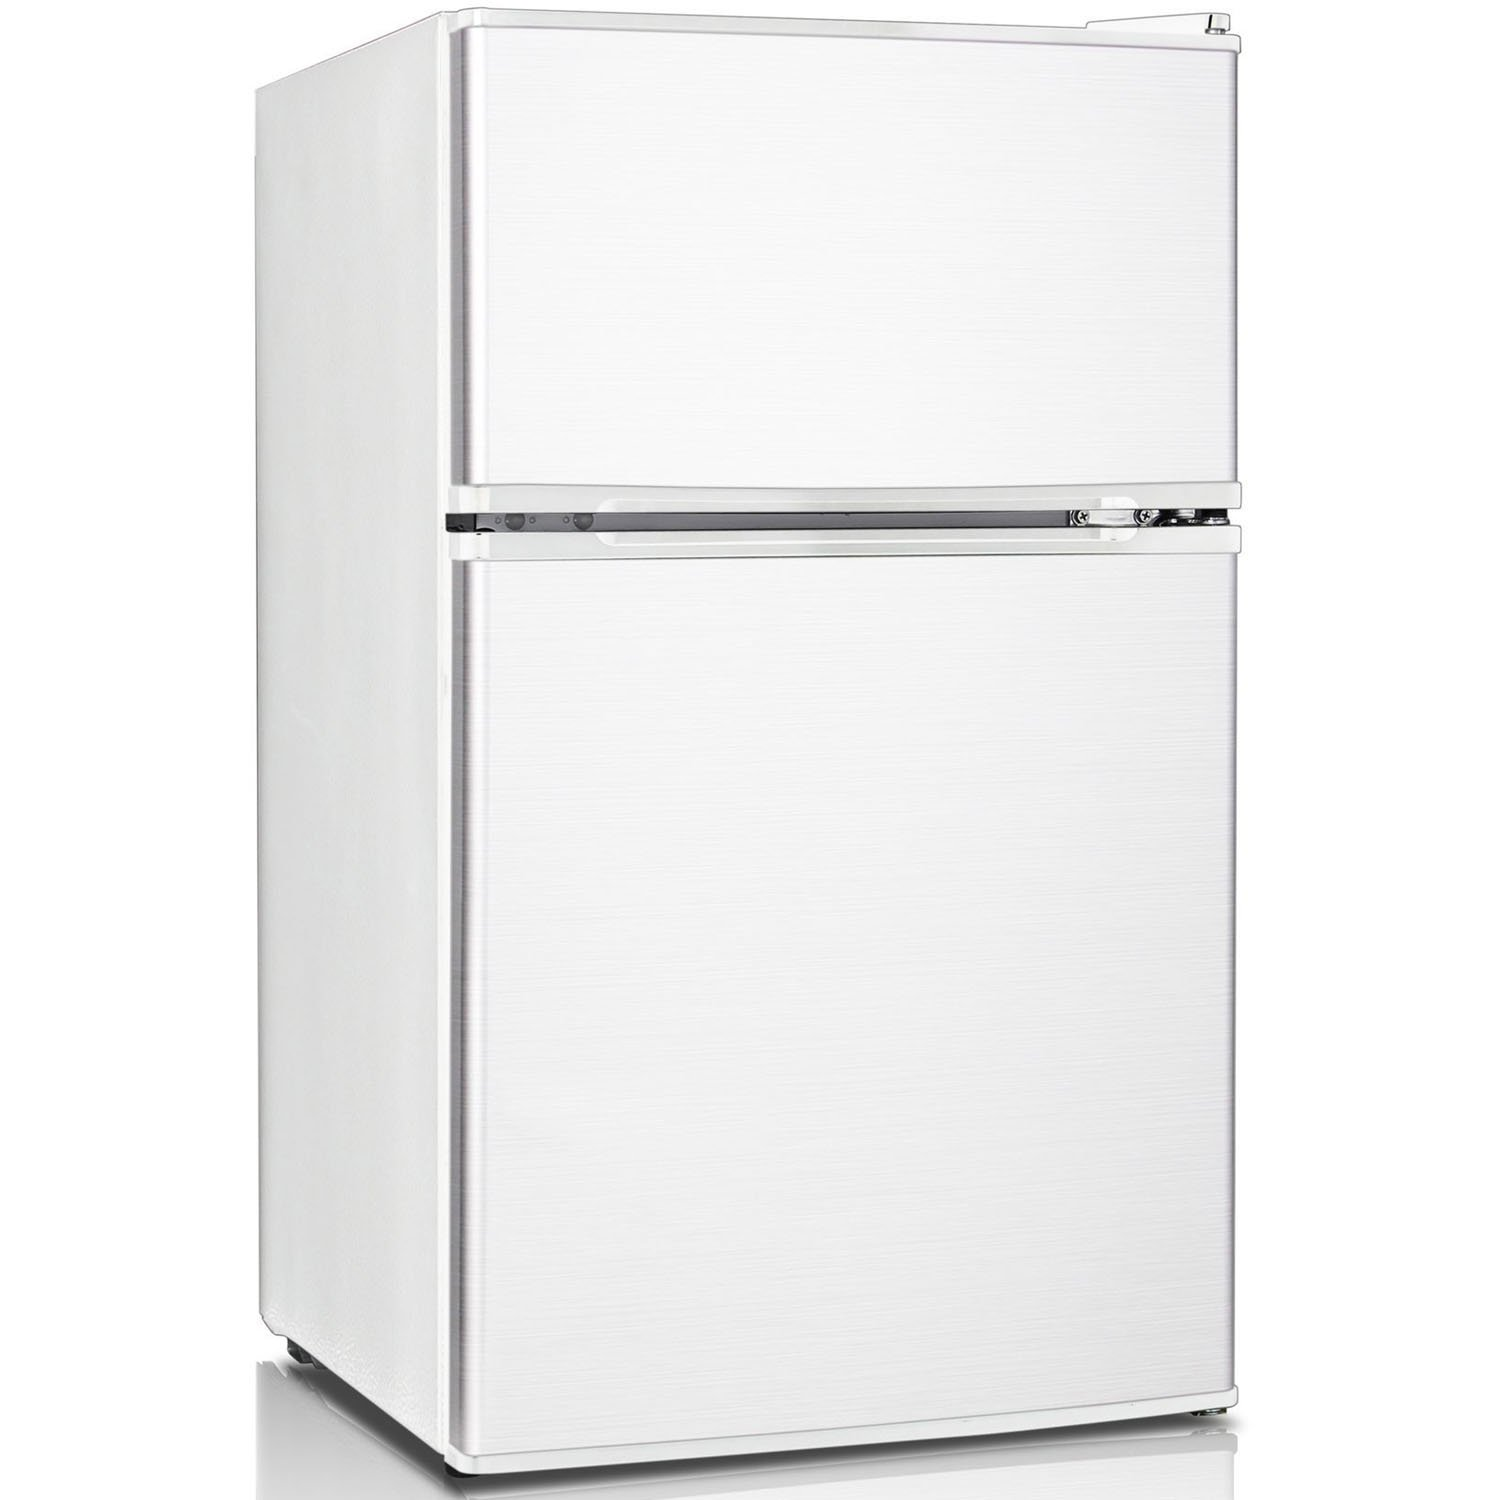 Amazon.com Keystone KSTRC312CW Compact 2-Door Refrigerator/Freezer 3.1 Cubic Feet White Appliances  sc 1 st  Amazon.com & Amazon.com: Keystone KSTRC312CW Compact 2-Door Refrigerator/Freezer ...